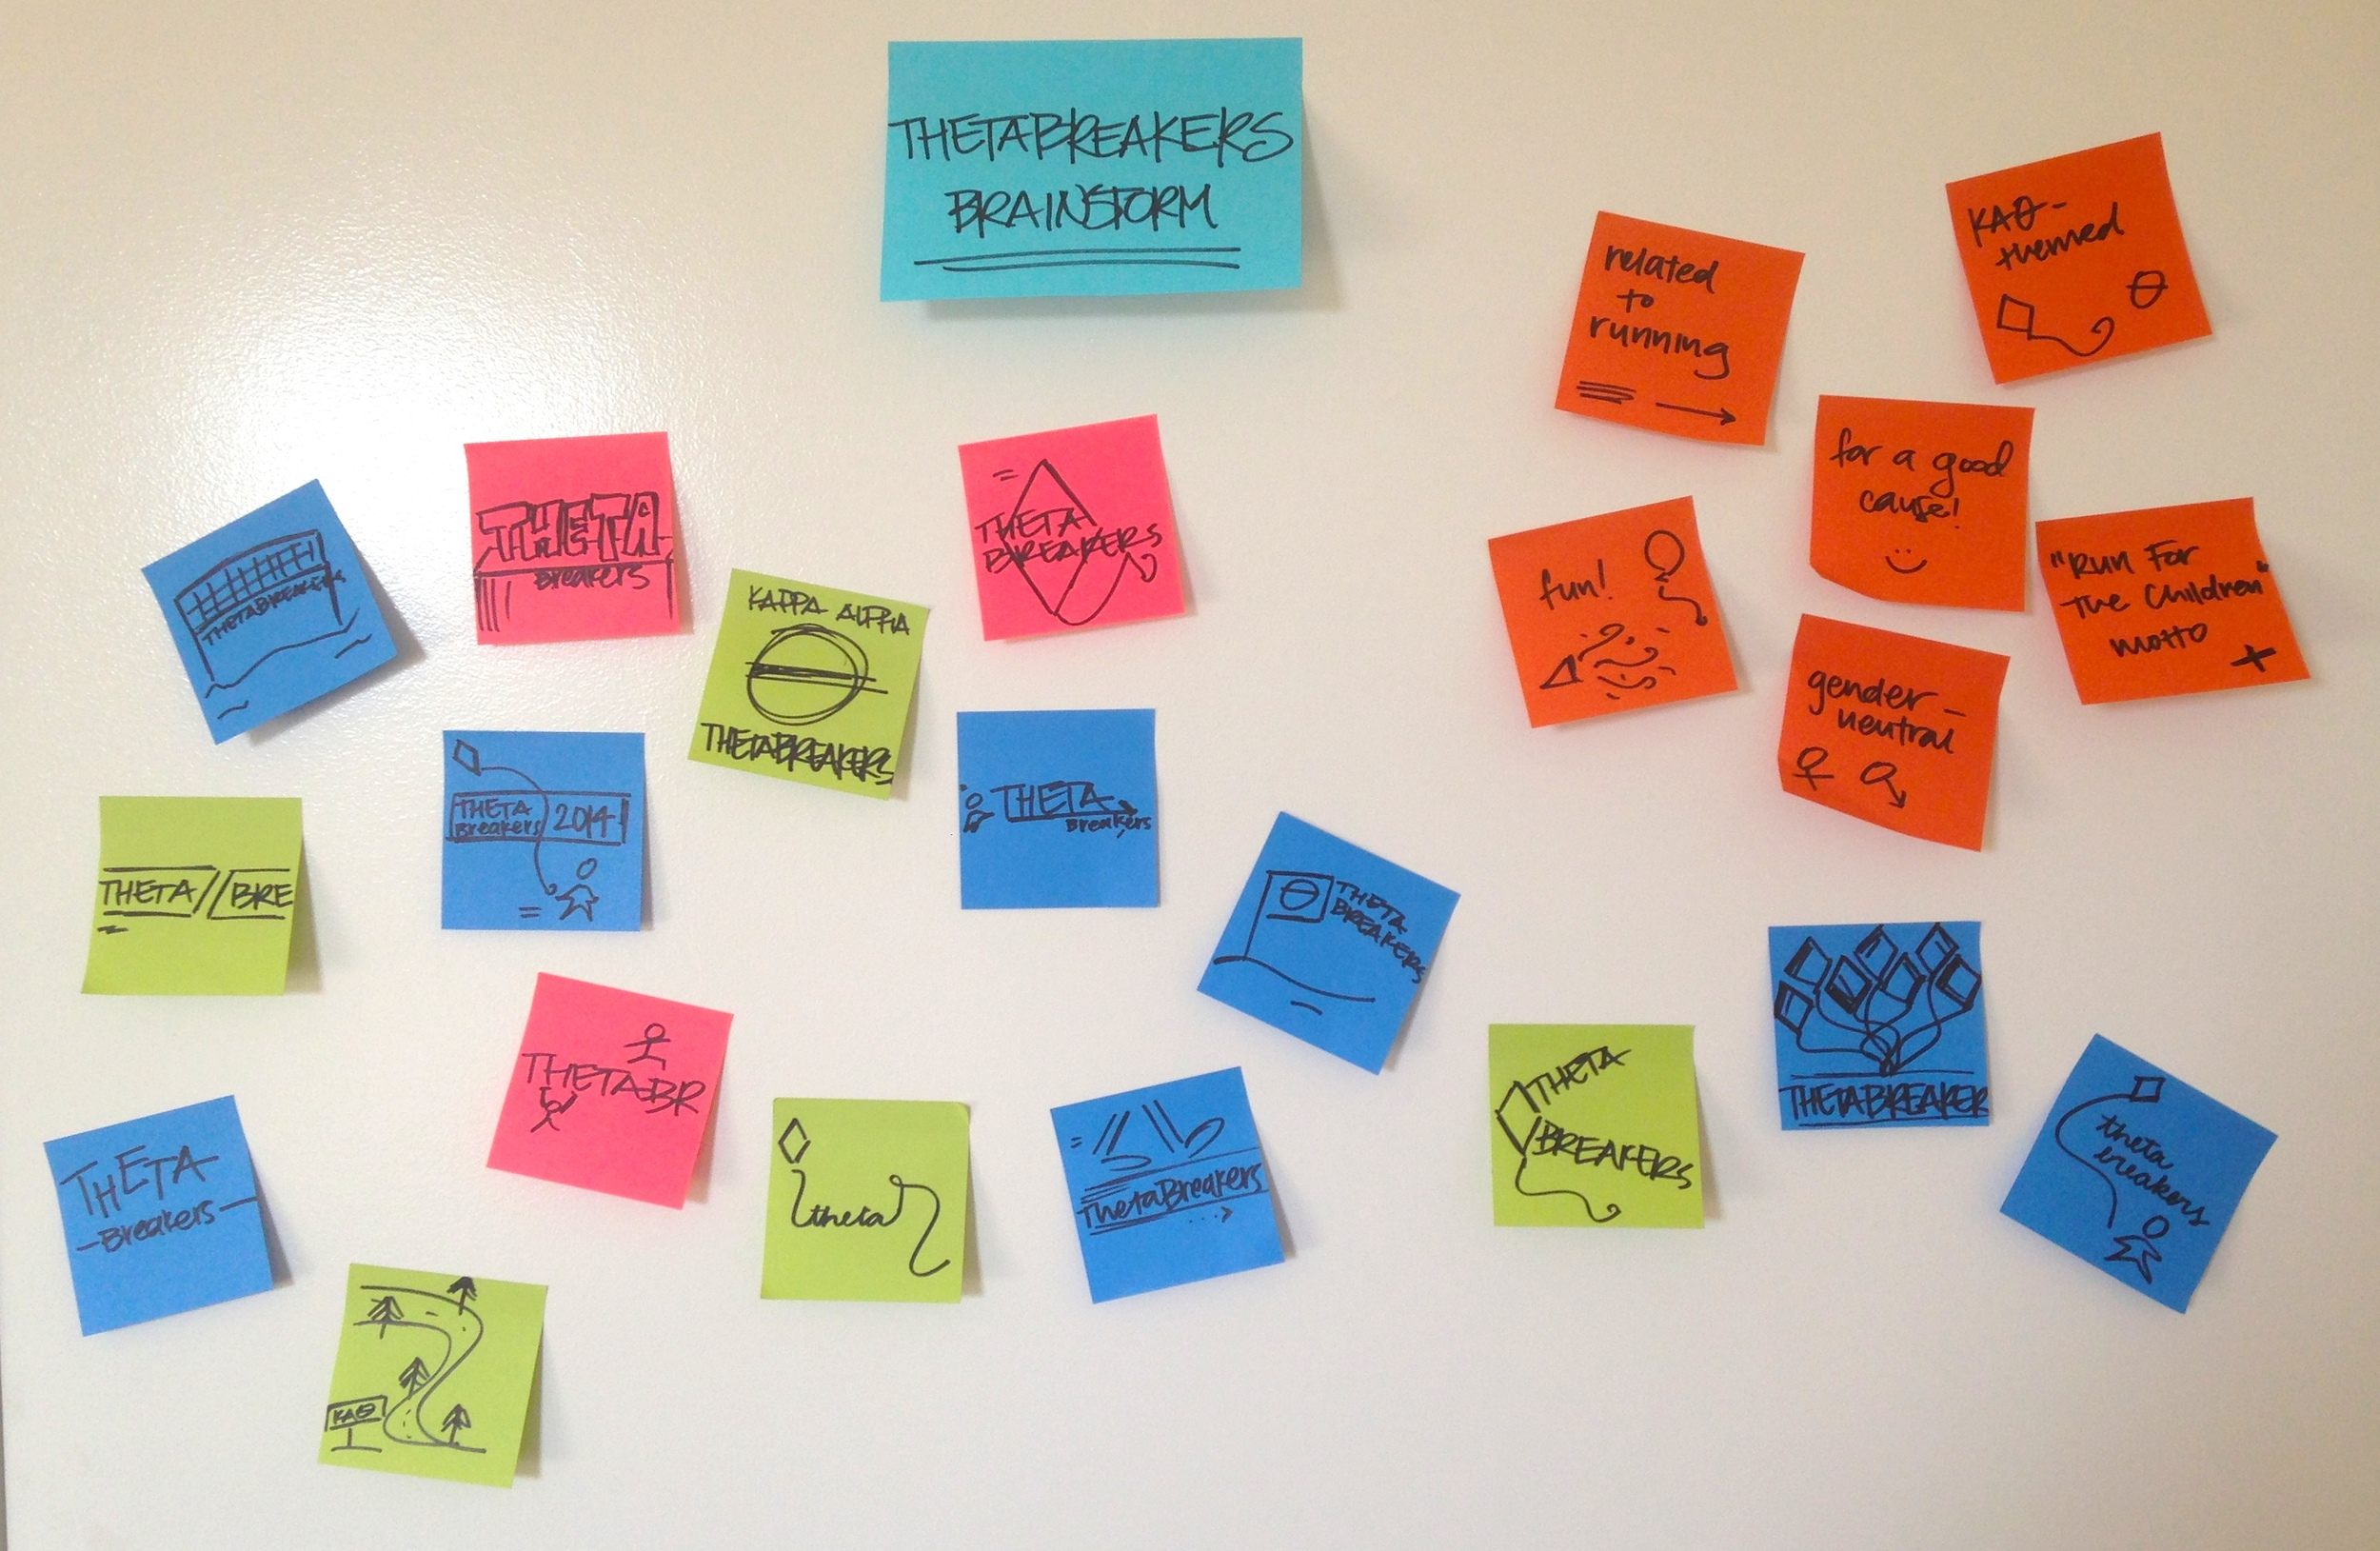 Sticky-note brainstorming session on the logo design.